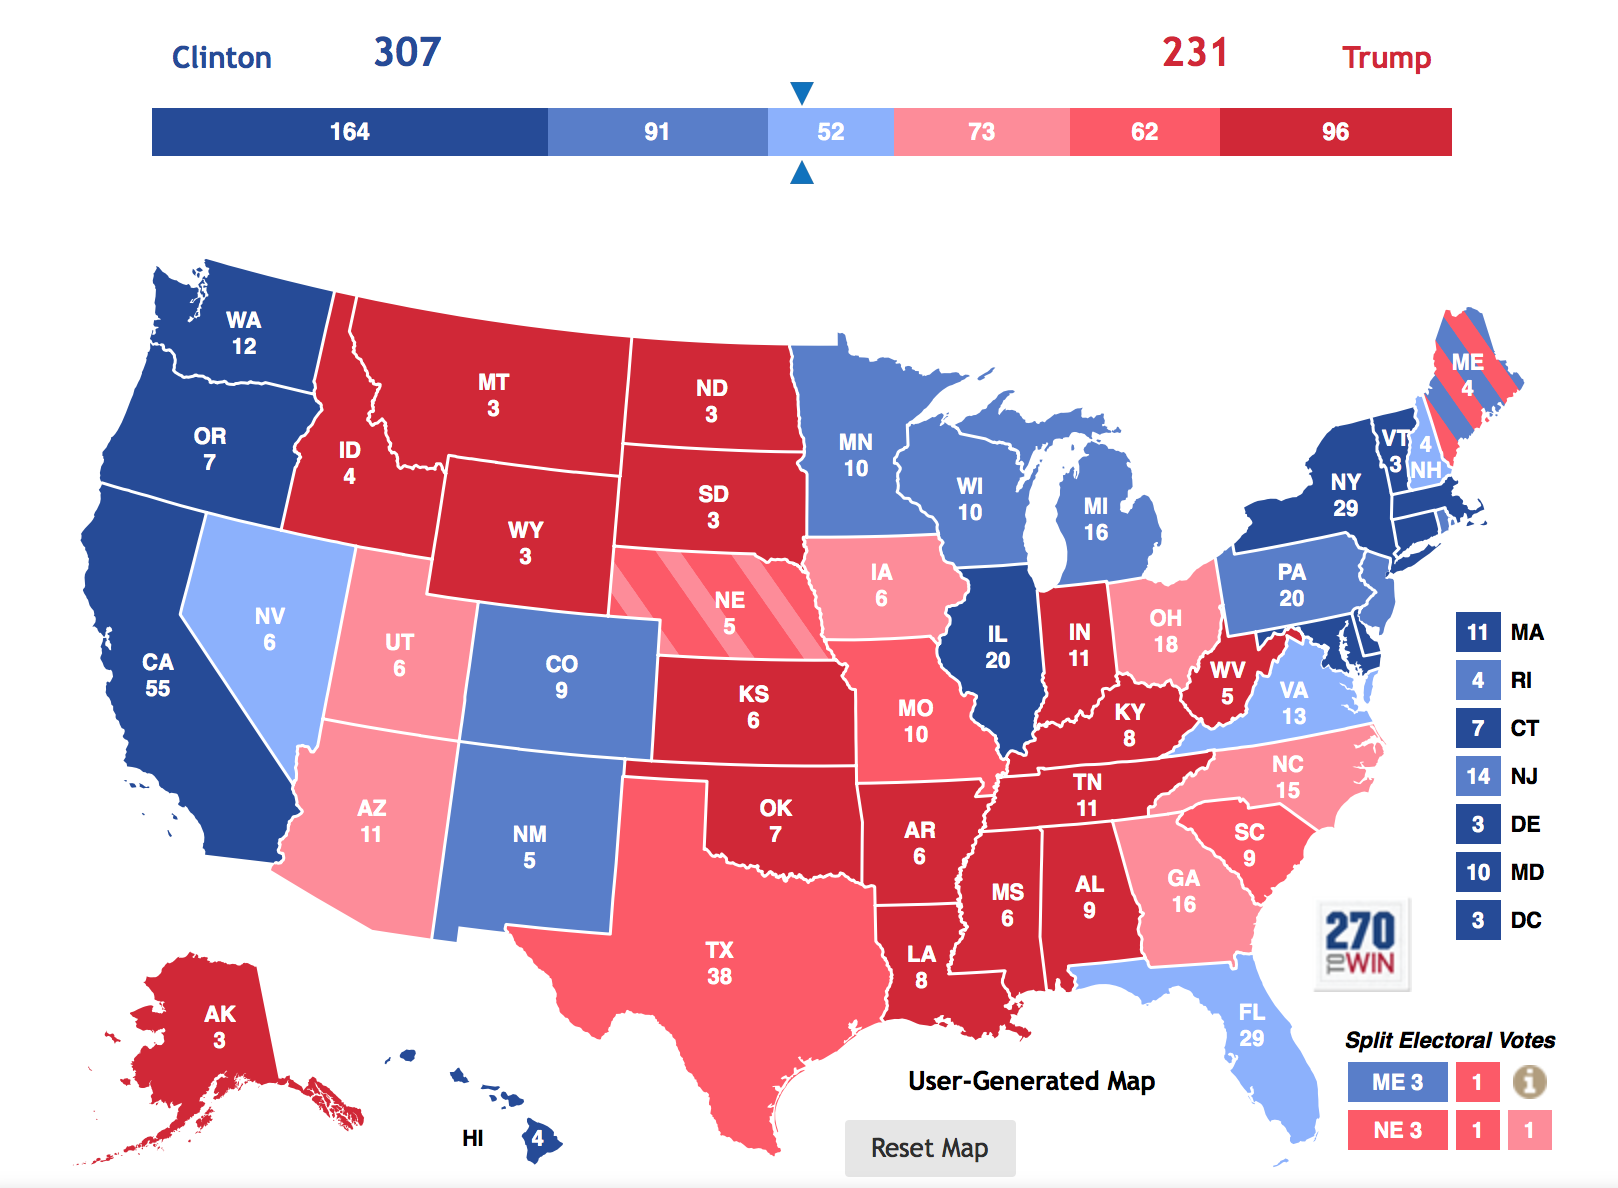 Final Electoral College Prediction